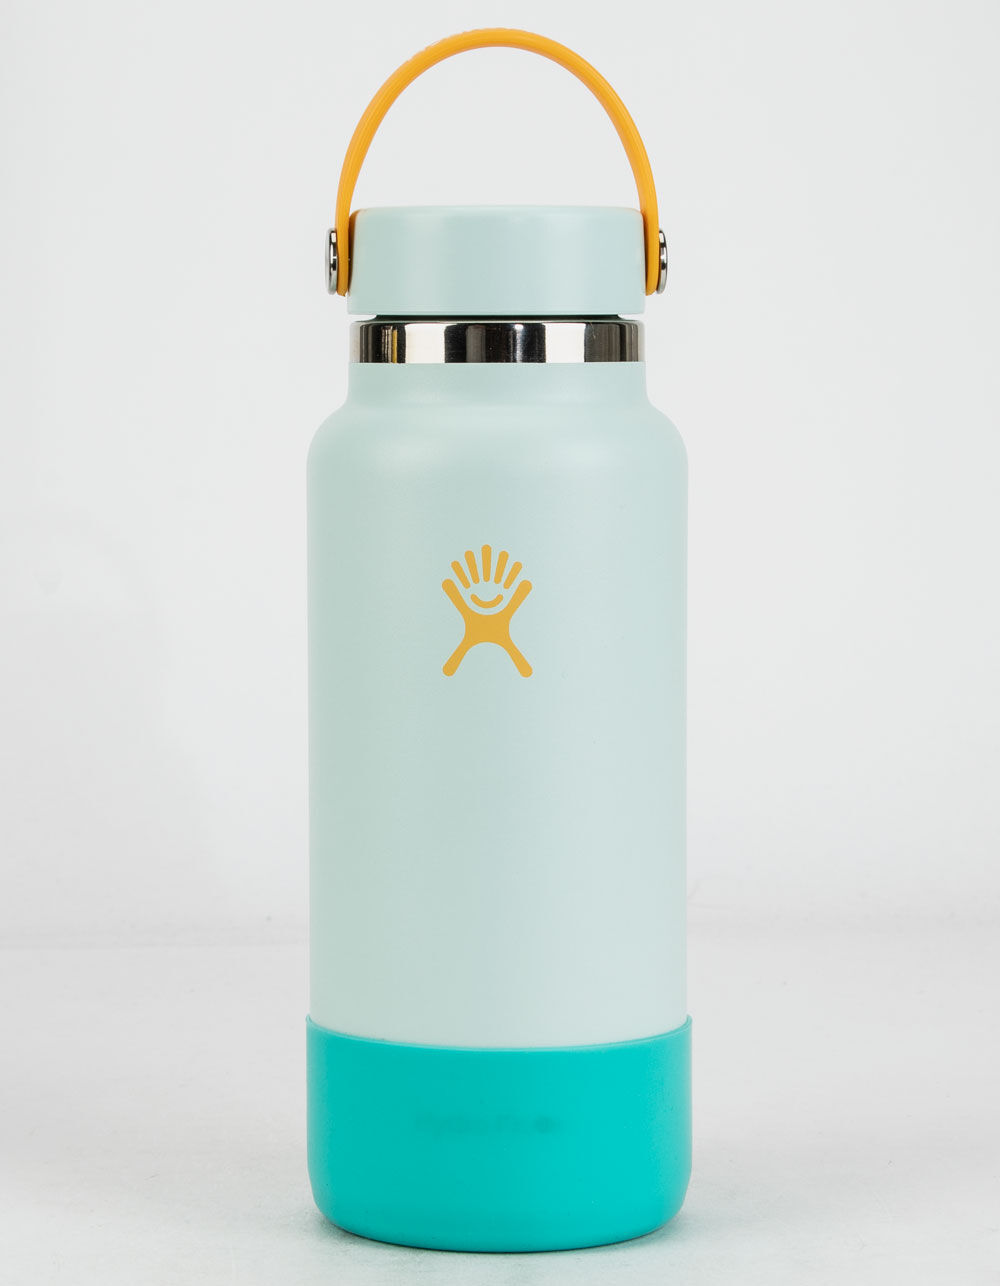 How To Clean A Hydro Flask